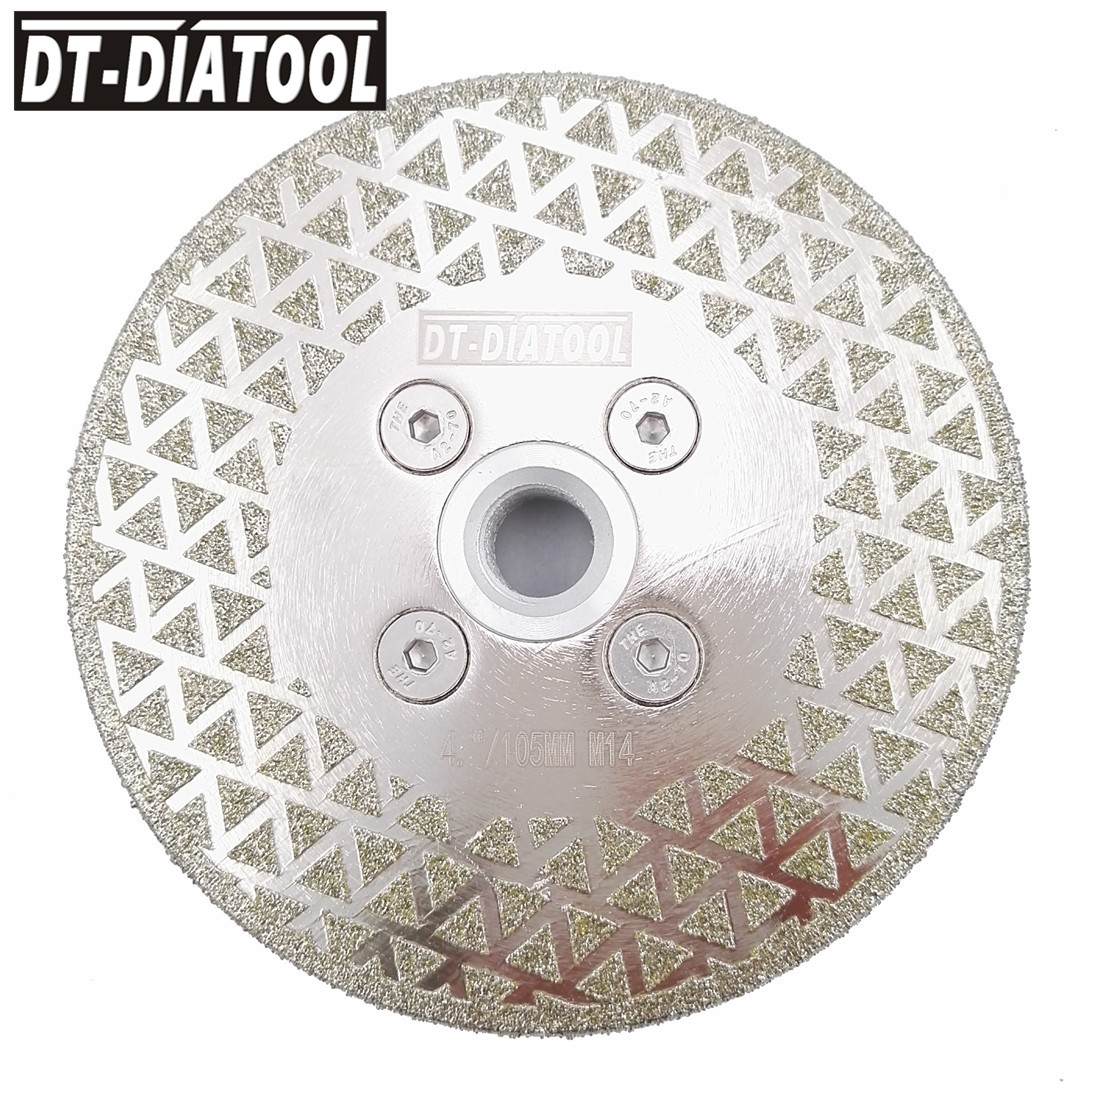 DT-DIATOOL 1pc Electroplated Diamond Cutting & Grinding Blade M14 Flange For Tile Marble Single Side Coated Diamond Saw Blade